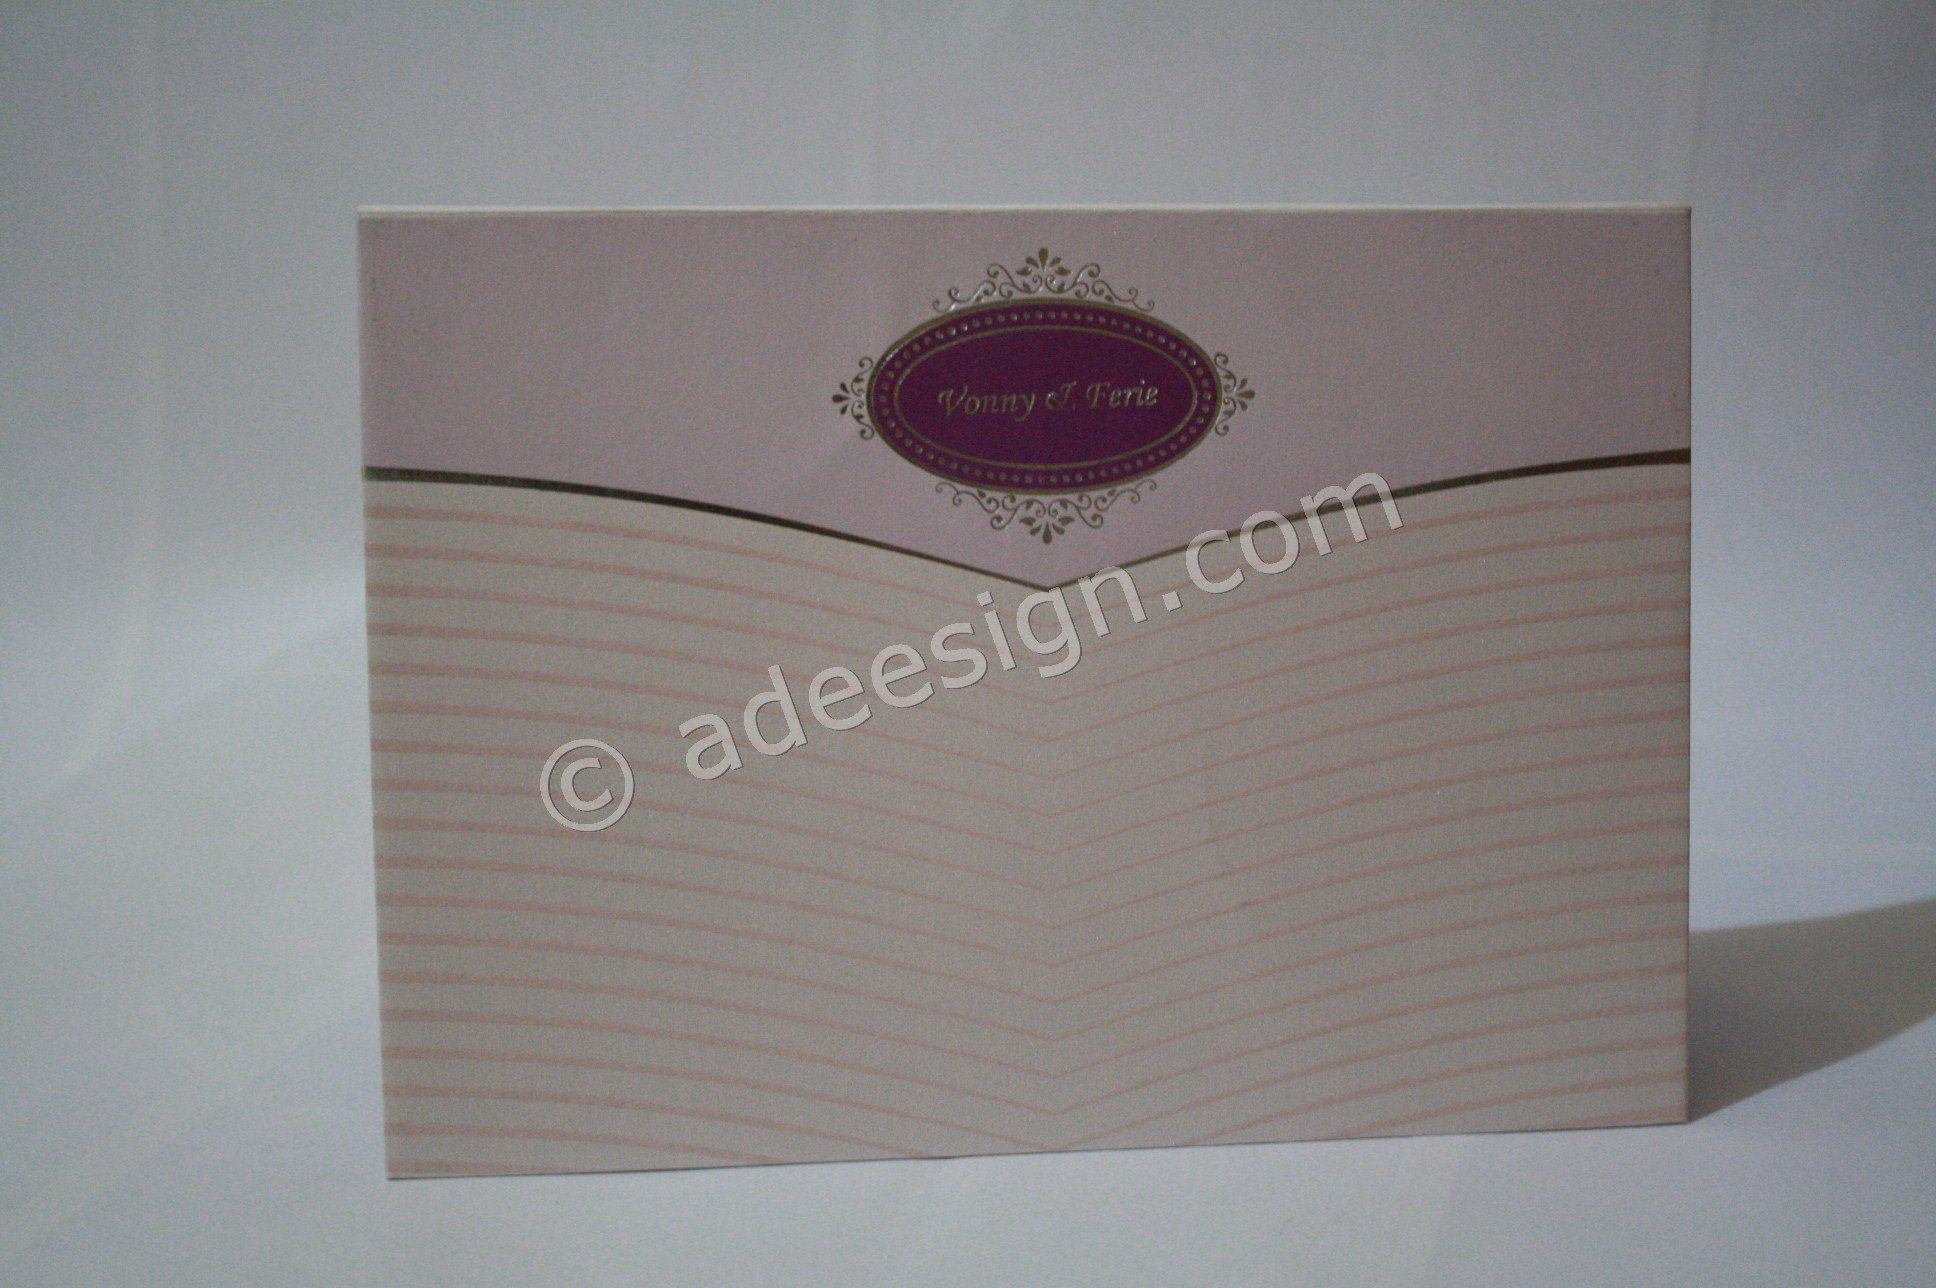 Undangan Pernikahan Hardcover Vonny dan Ferie 2 - Pesan Wedding Invitations Simple di Jambangan Karah